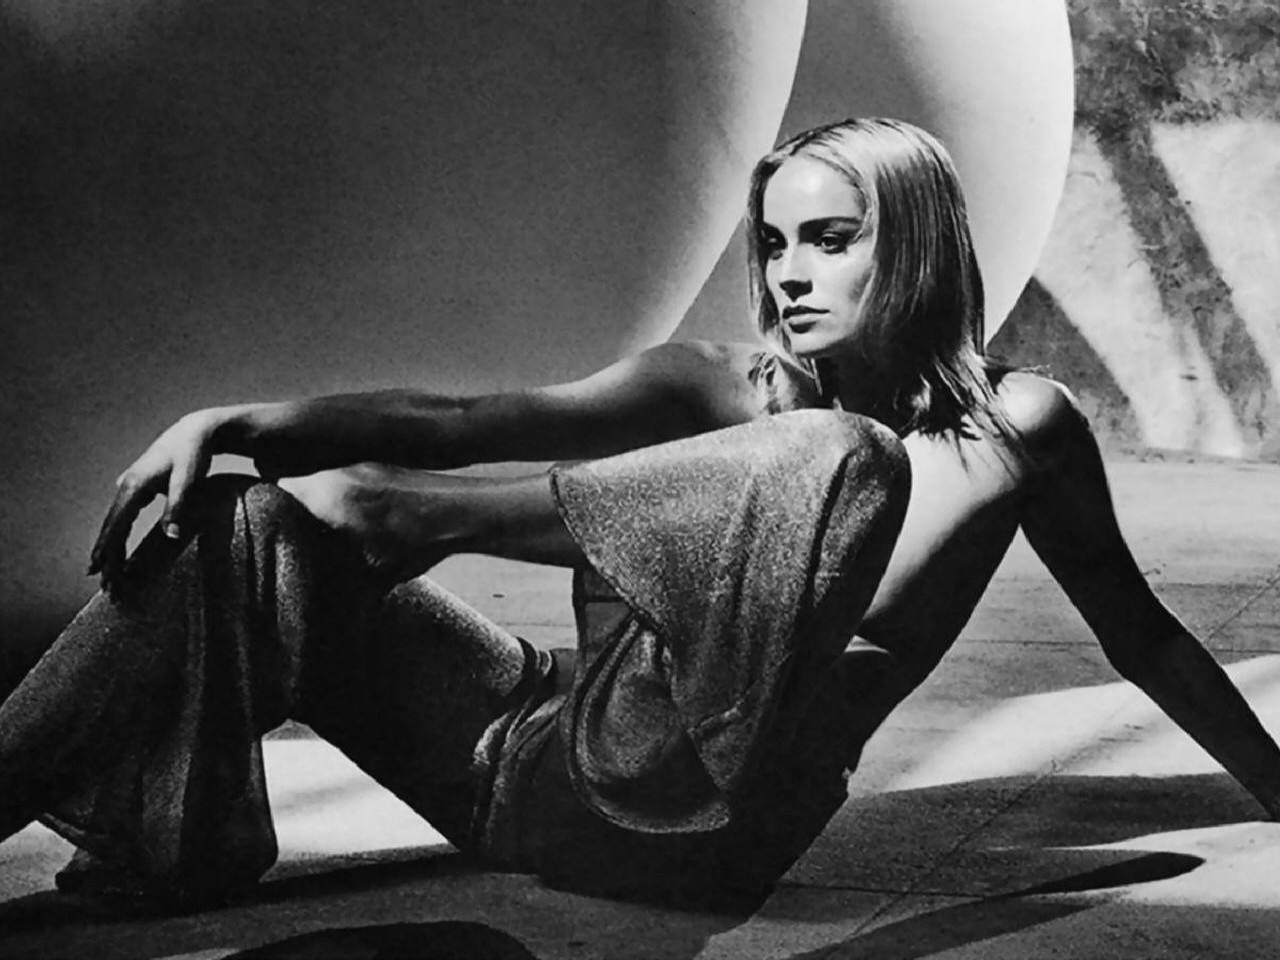 Wallpaper - una seducente Sharon Stone in posa da diva d'altri tempi